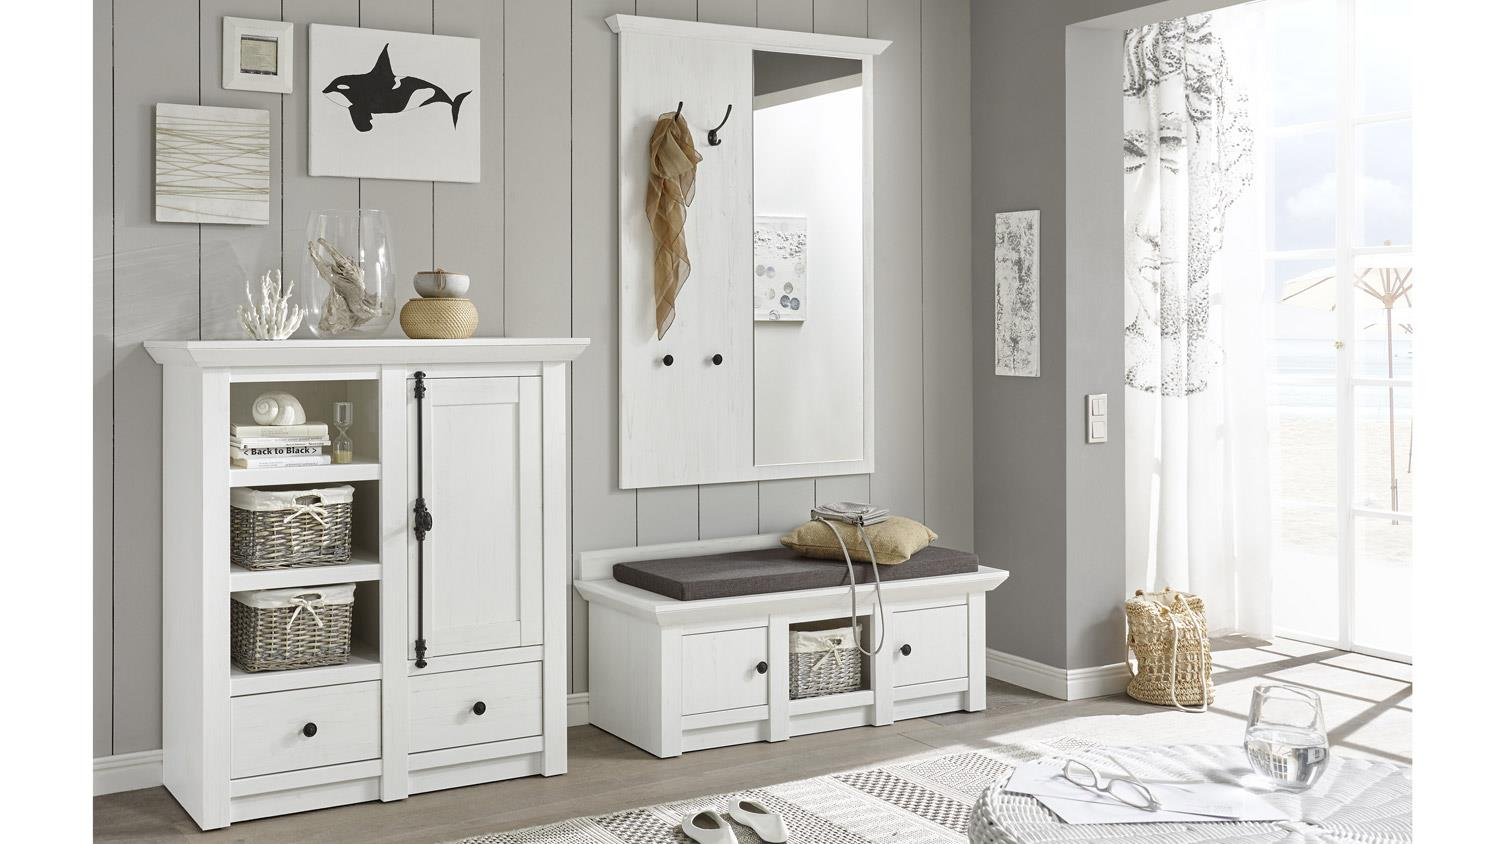 garderobe set westerland 1 mit paneel in pinie wei. Black Bedroom Furniture Sets. Home Design Ideas